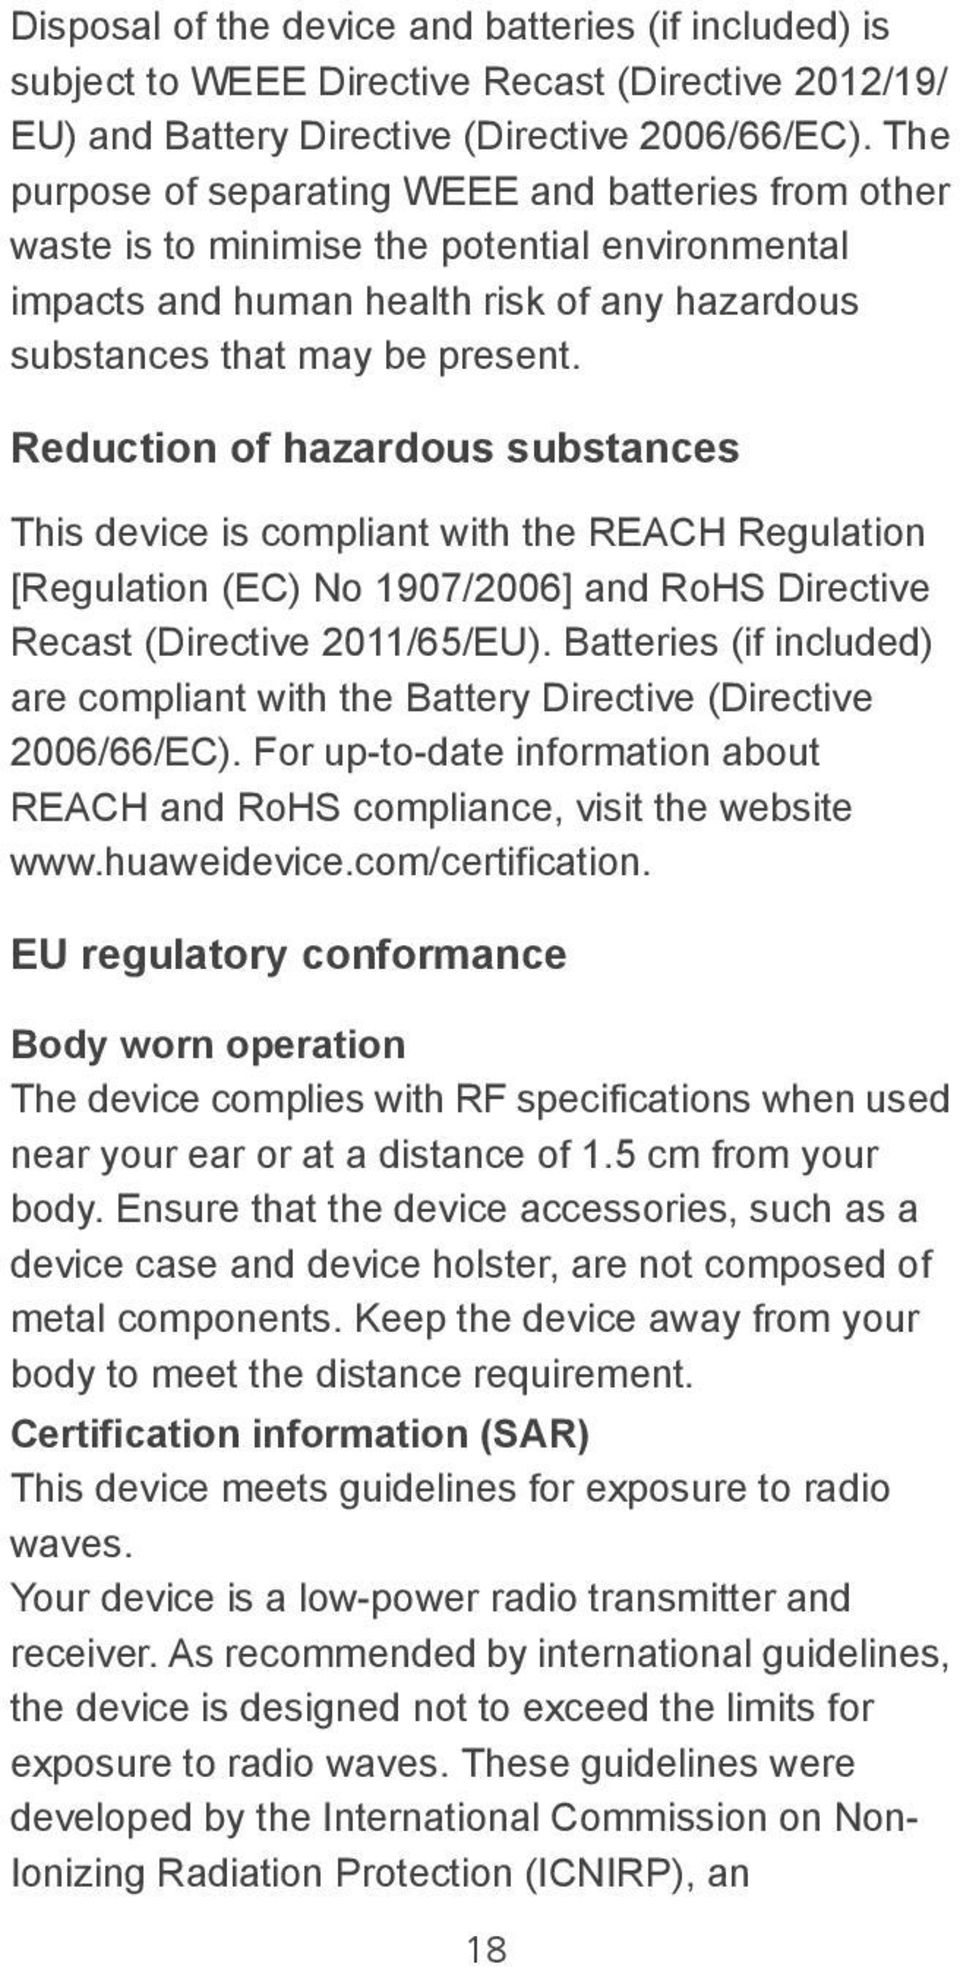 Reduction of hazardous substances This device is compliant with the REACH Regulation [Regulation (EC) No 1907/2006] and RoHS Directive Recast (Directive 2011/65/EU).